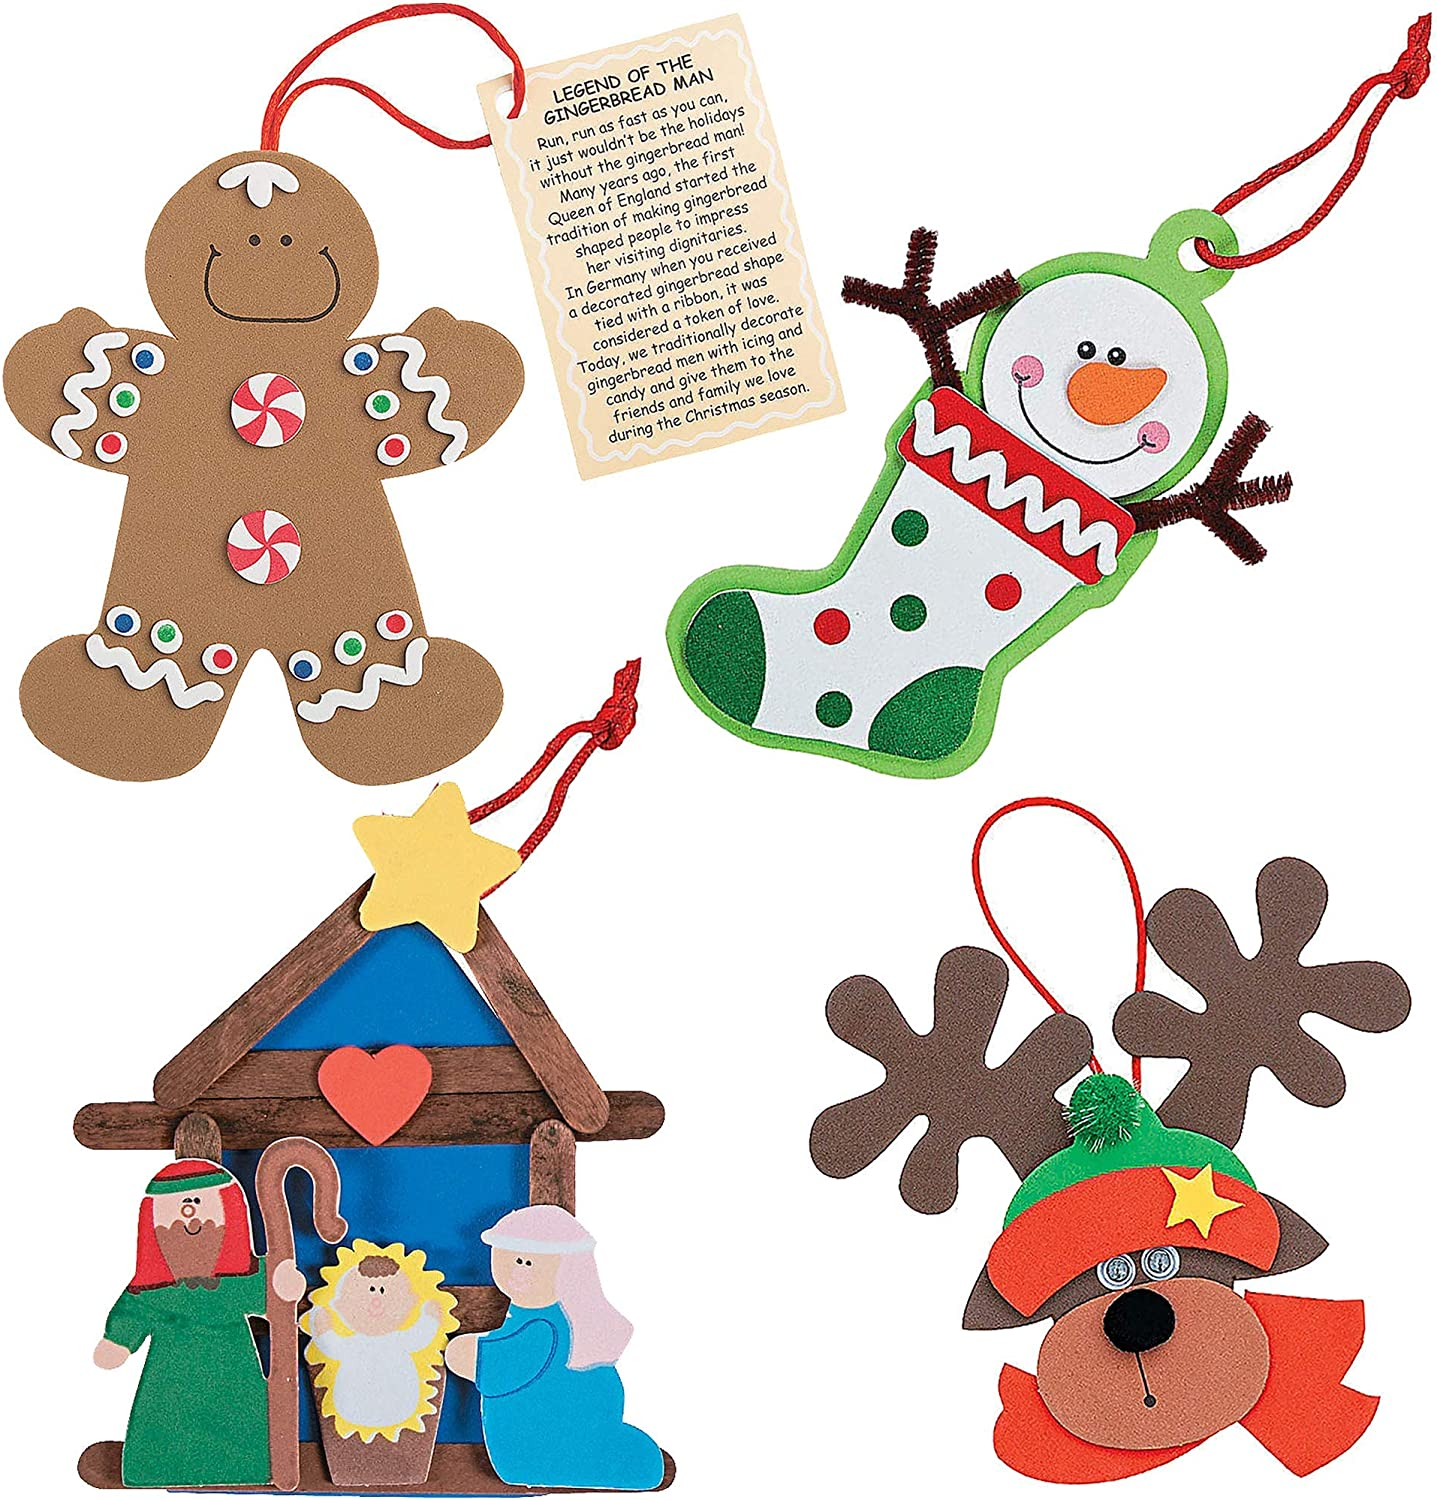 Christmas Crafts Ornaments Foam Crafts Kit For Kids (Set of 4) Gingerbread, Reindeer, Nativity, Snowman Stocking - Fun Holiday DIY Project Party Activities, Xmas Party Favors, Stocking Stuffers by 4E's Novelty